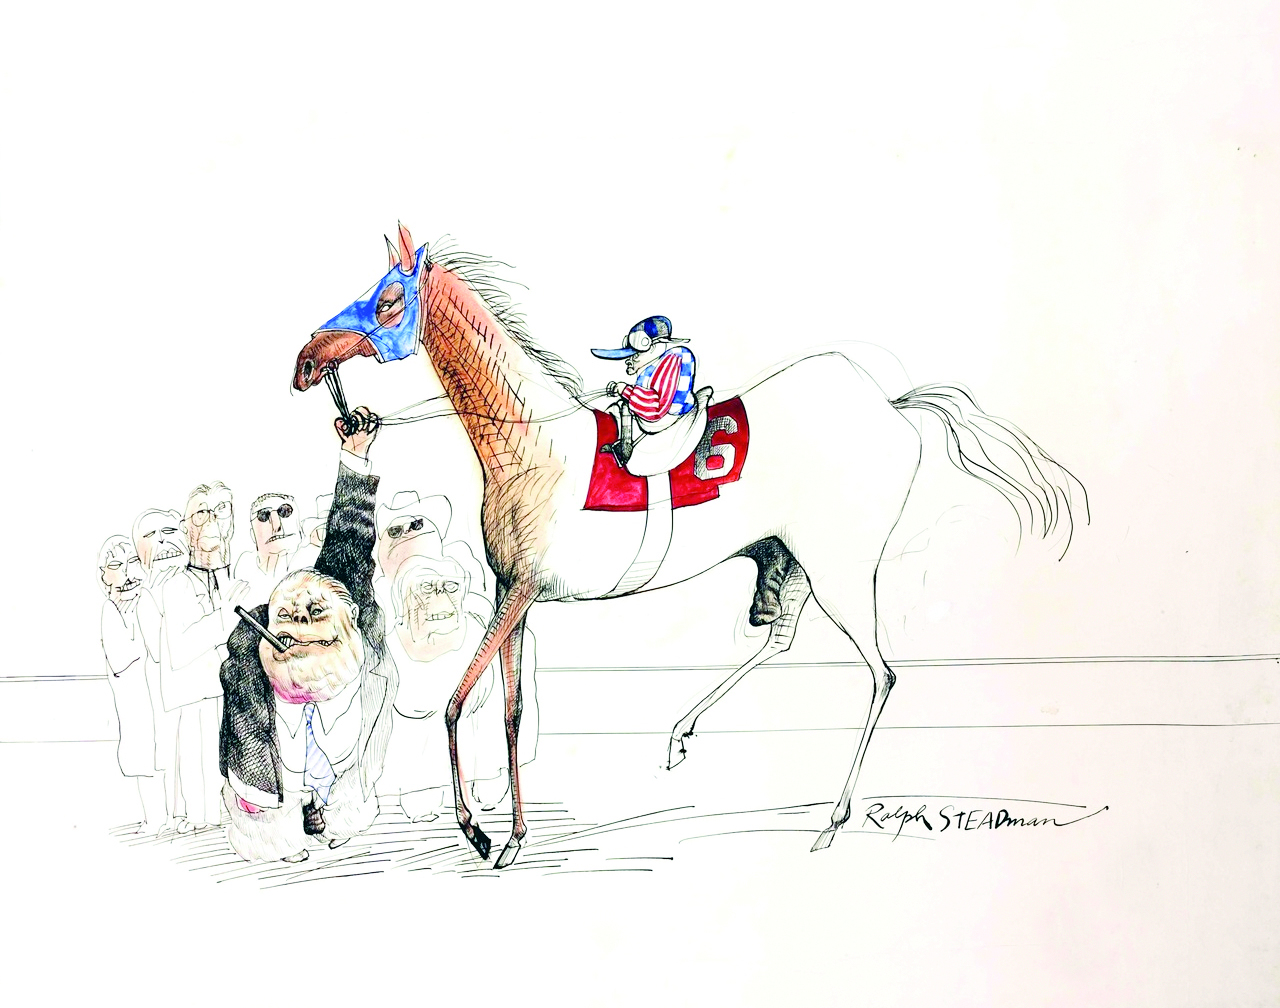 Hunter S. Thompson Kentucky Derby art by Ralph Steadman (courtesy of SF Jazz)